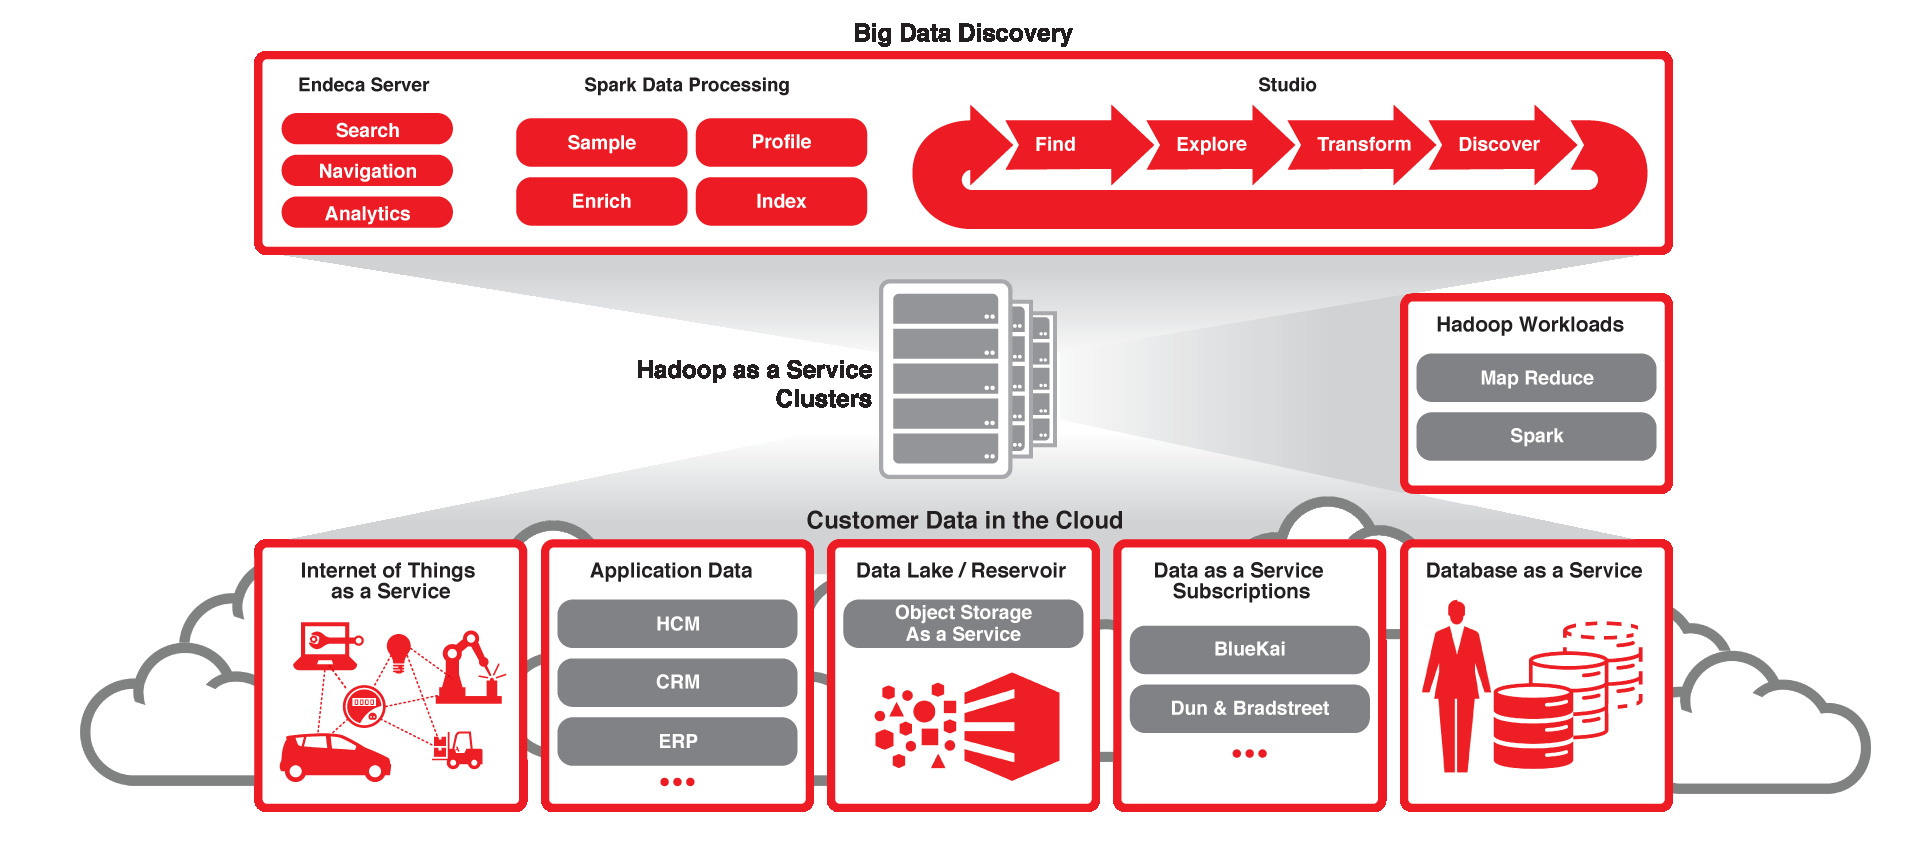 Big Data Discovery Cloud Service (coming soon) Copyright 2014 Oracle and/or